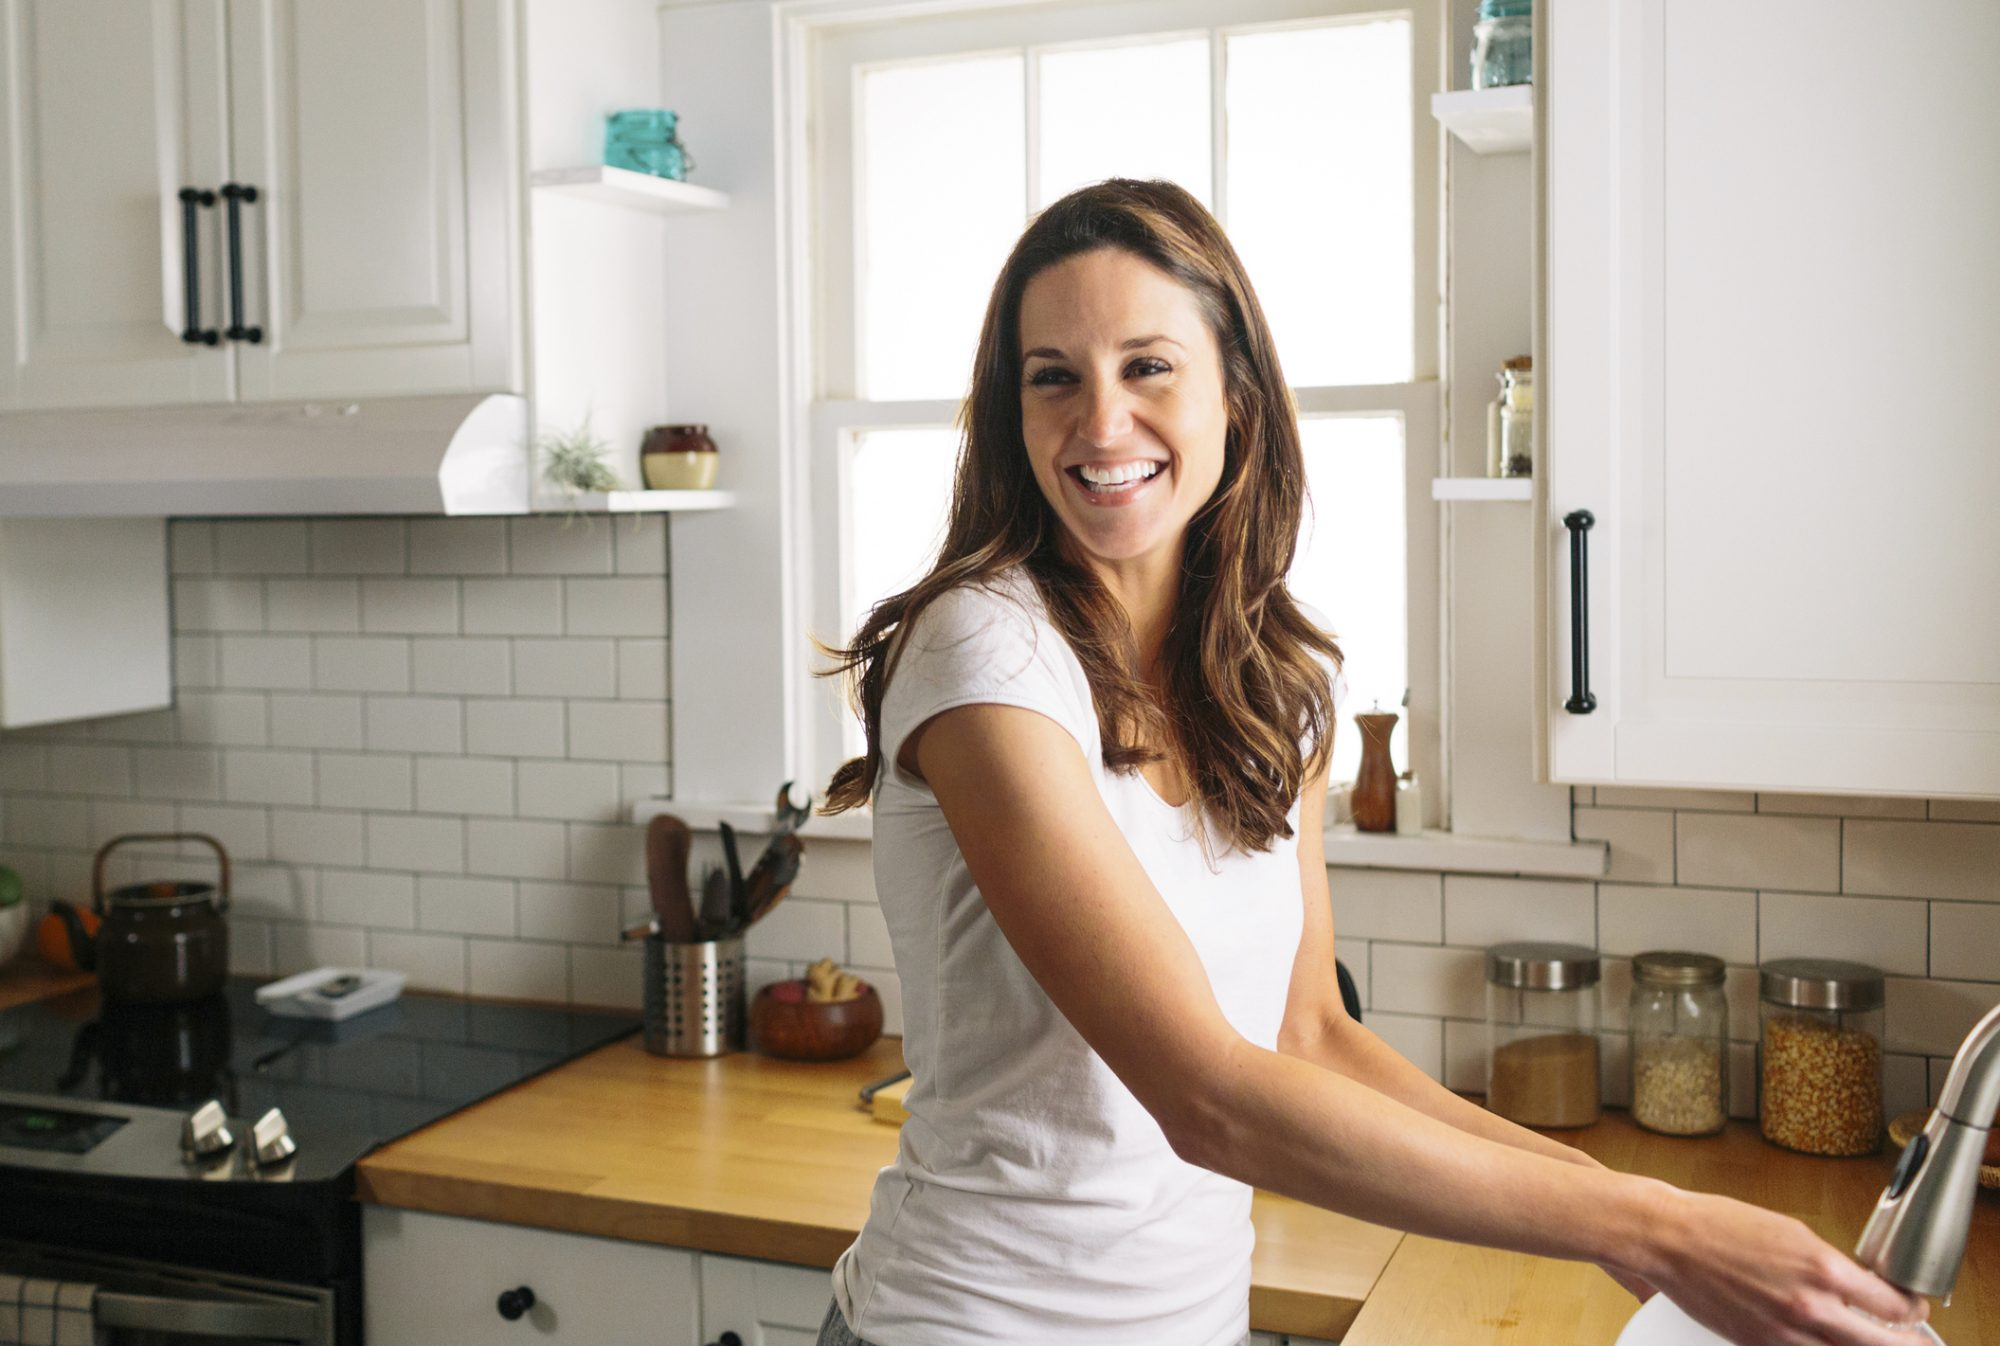 Happy Woman Cleaning Kitchen